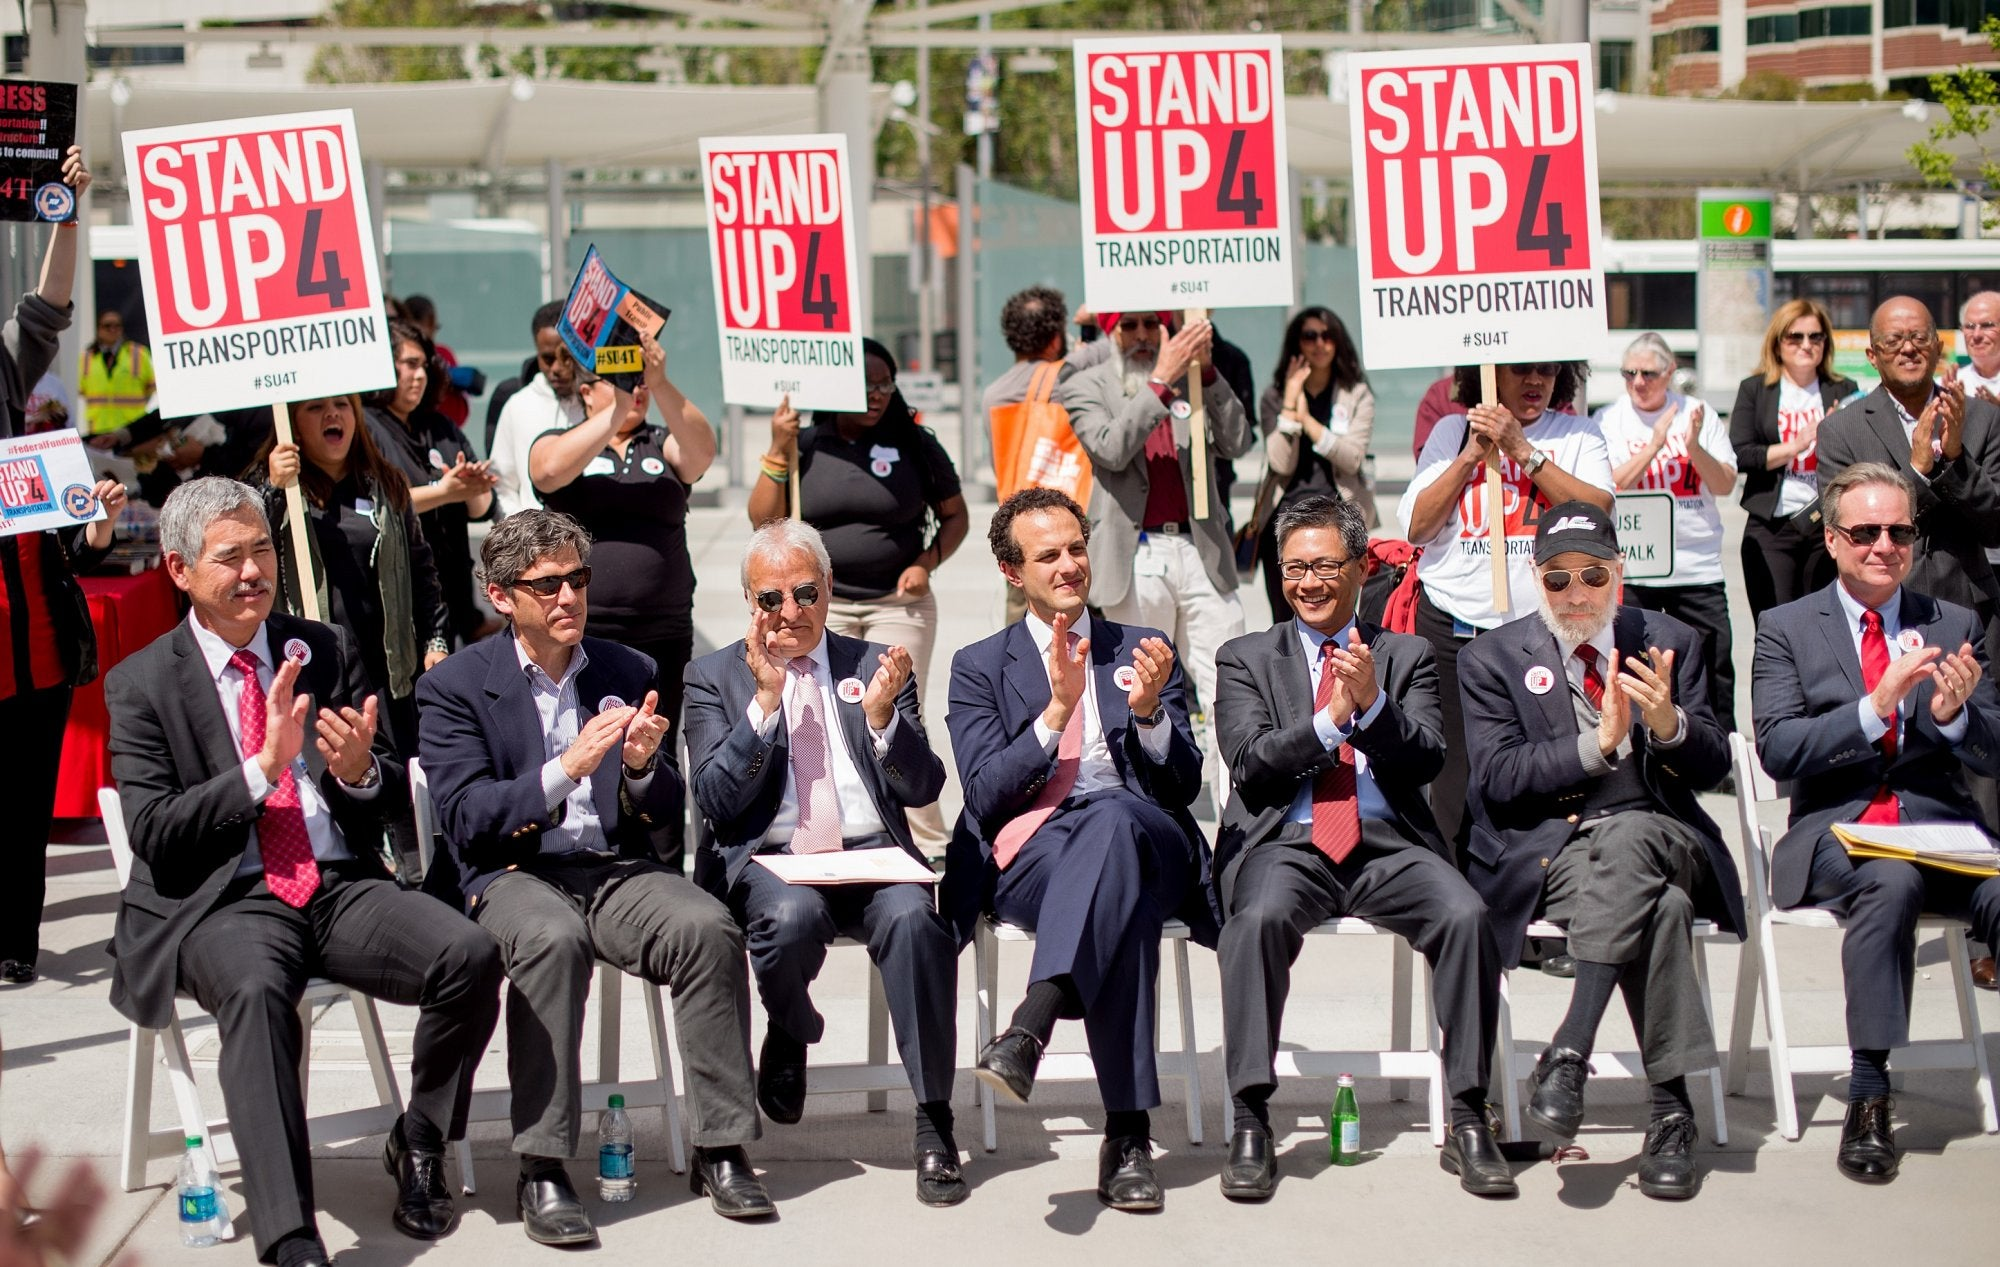 Bay Area and Calif. officials seated at the press event for Stand Up for Transportation